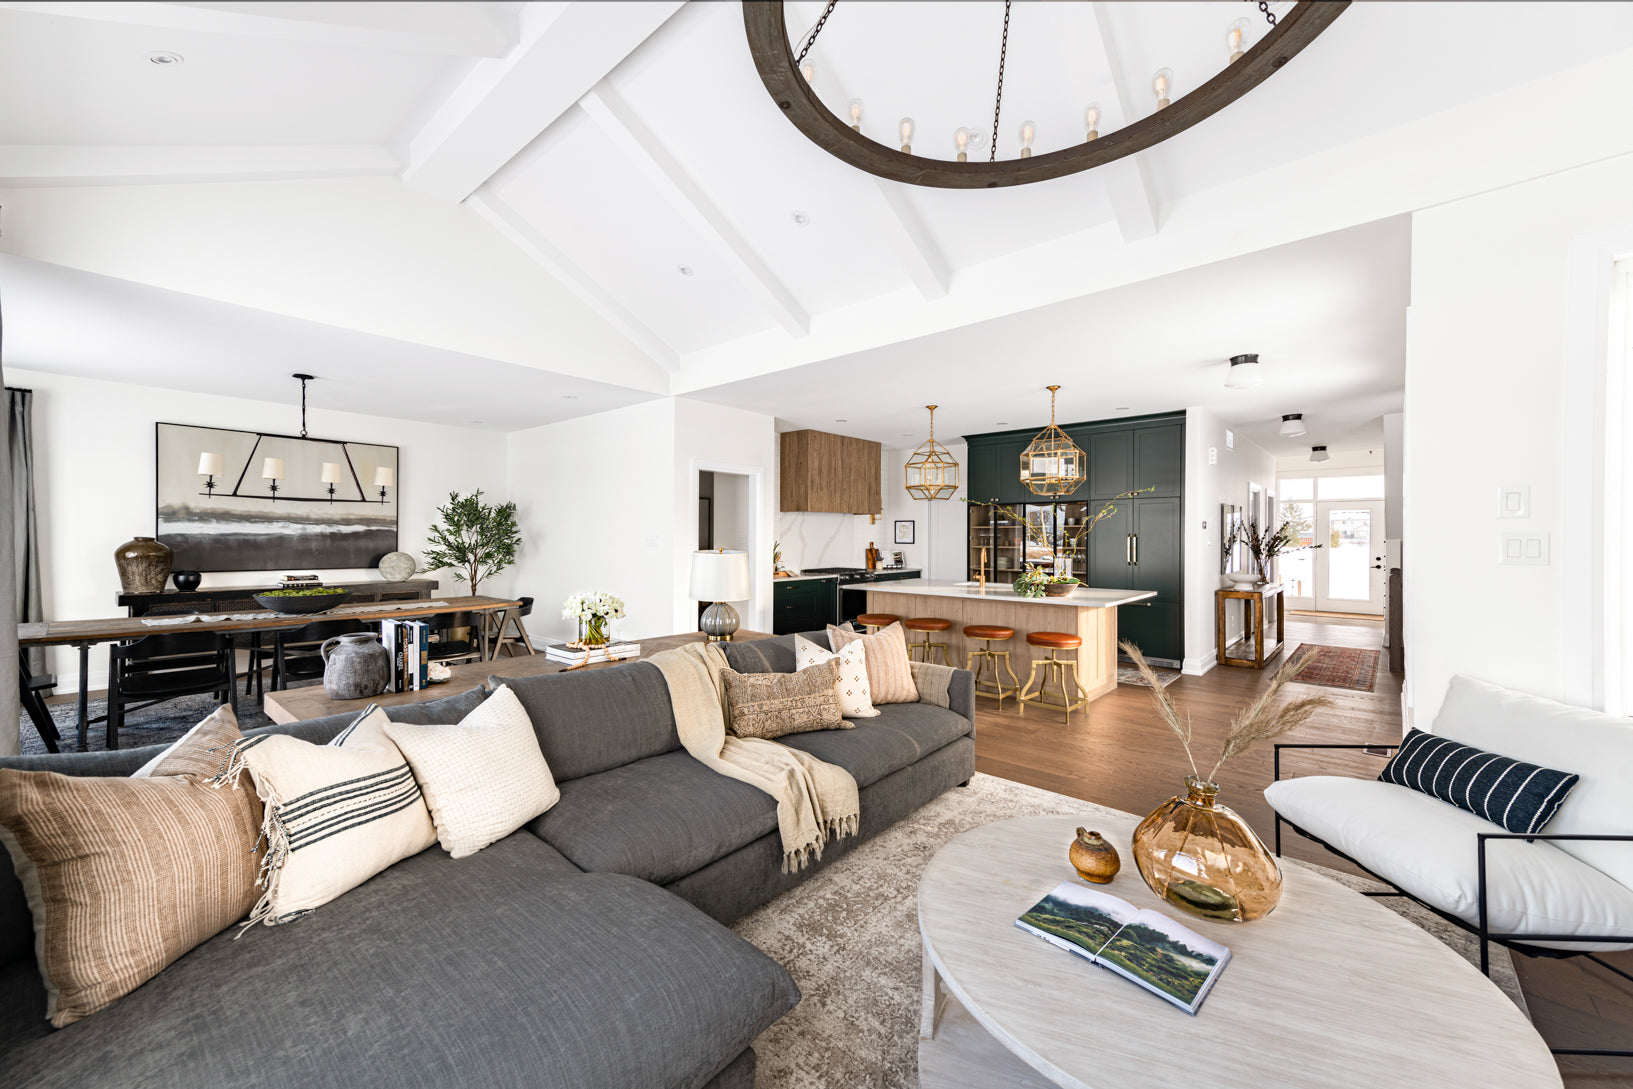 Living room with grey sectional with overview of dining room and kitchen